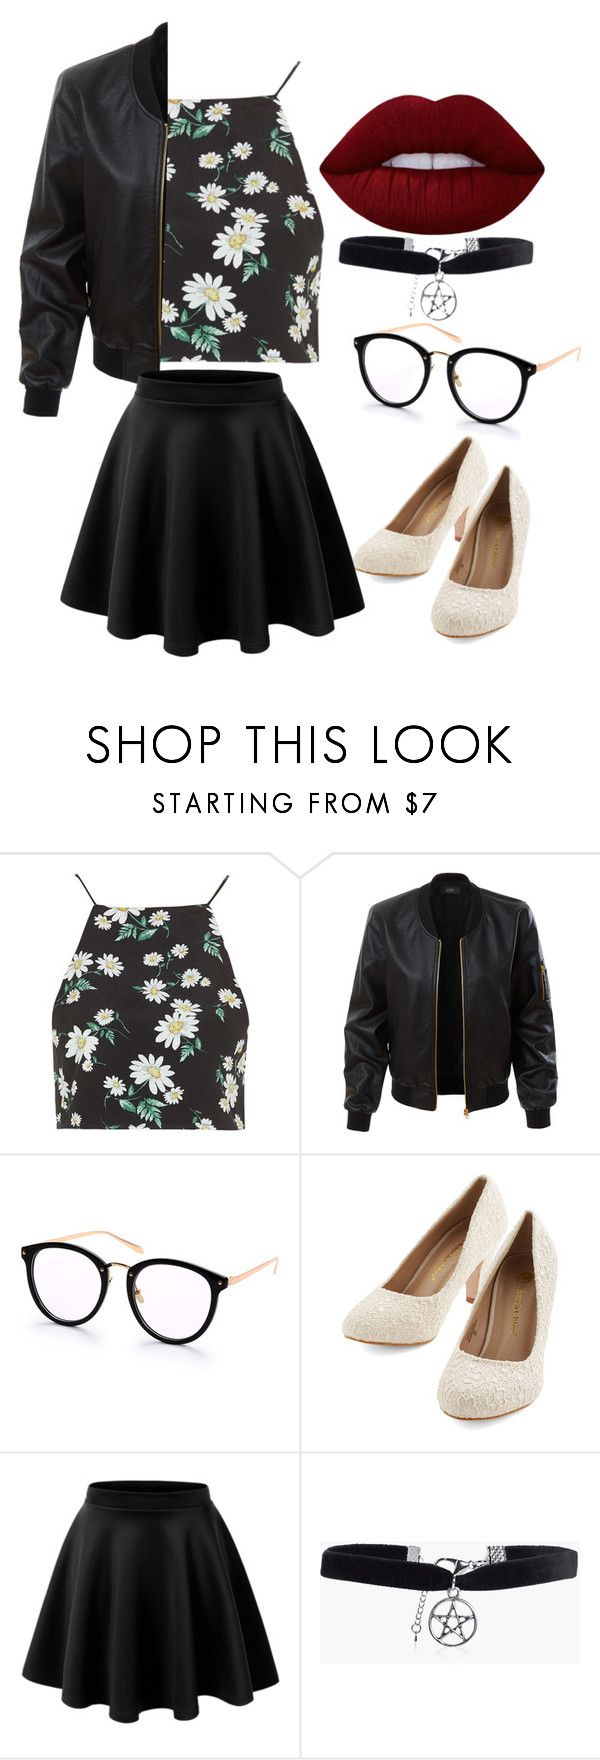 """""""outfit"""" by hjeanb on Polyvore featuring Topshop, LE3NO, Boohoo and Lime Crime"""